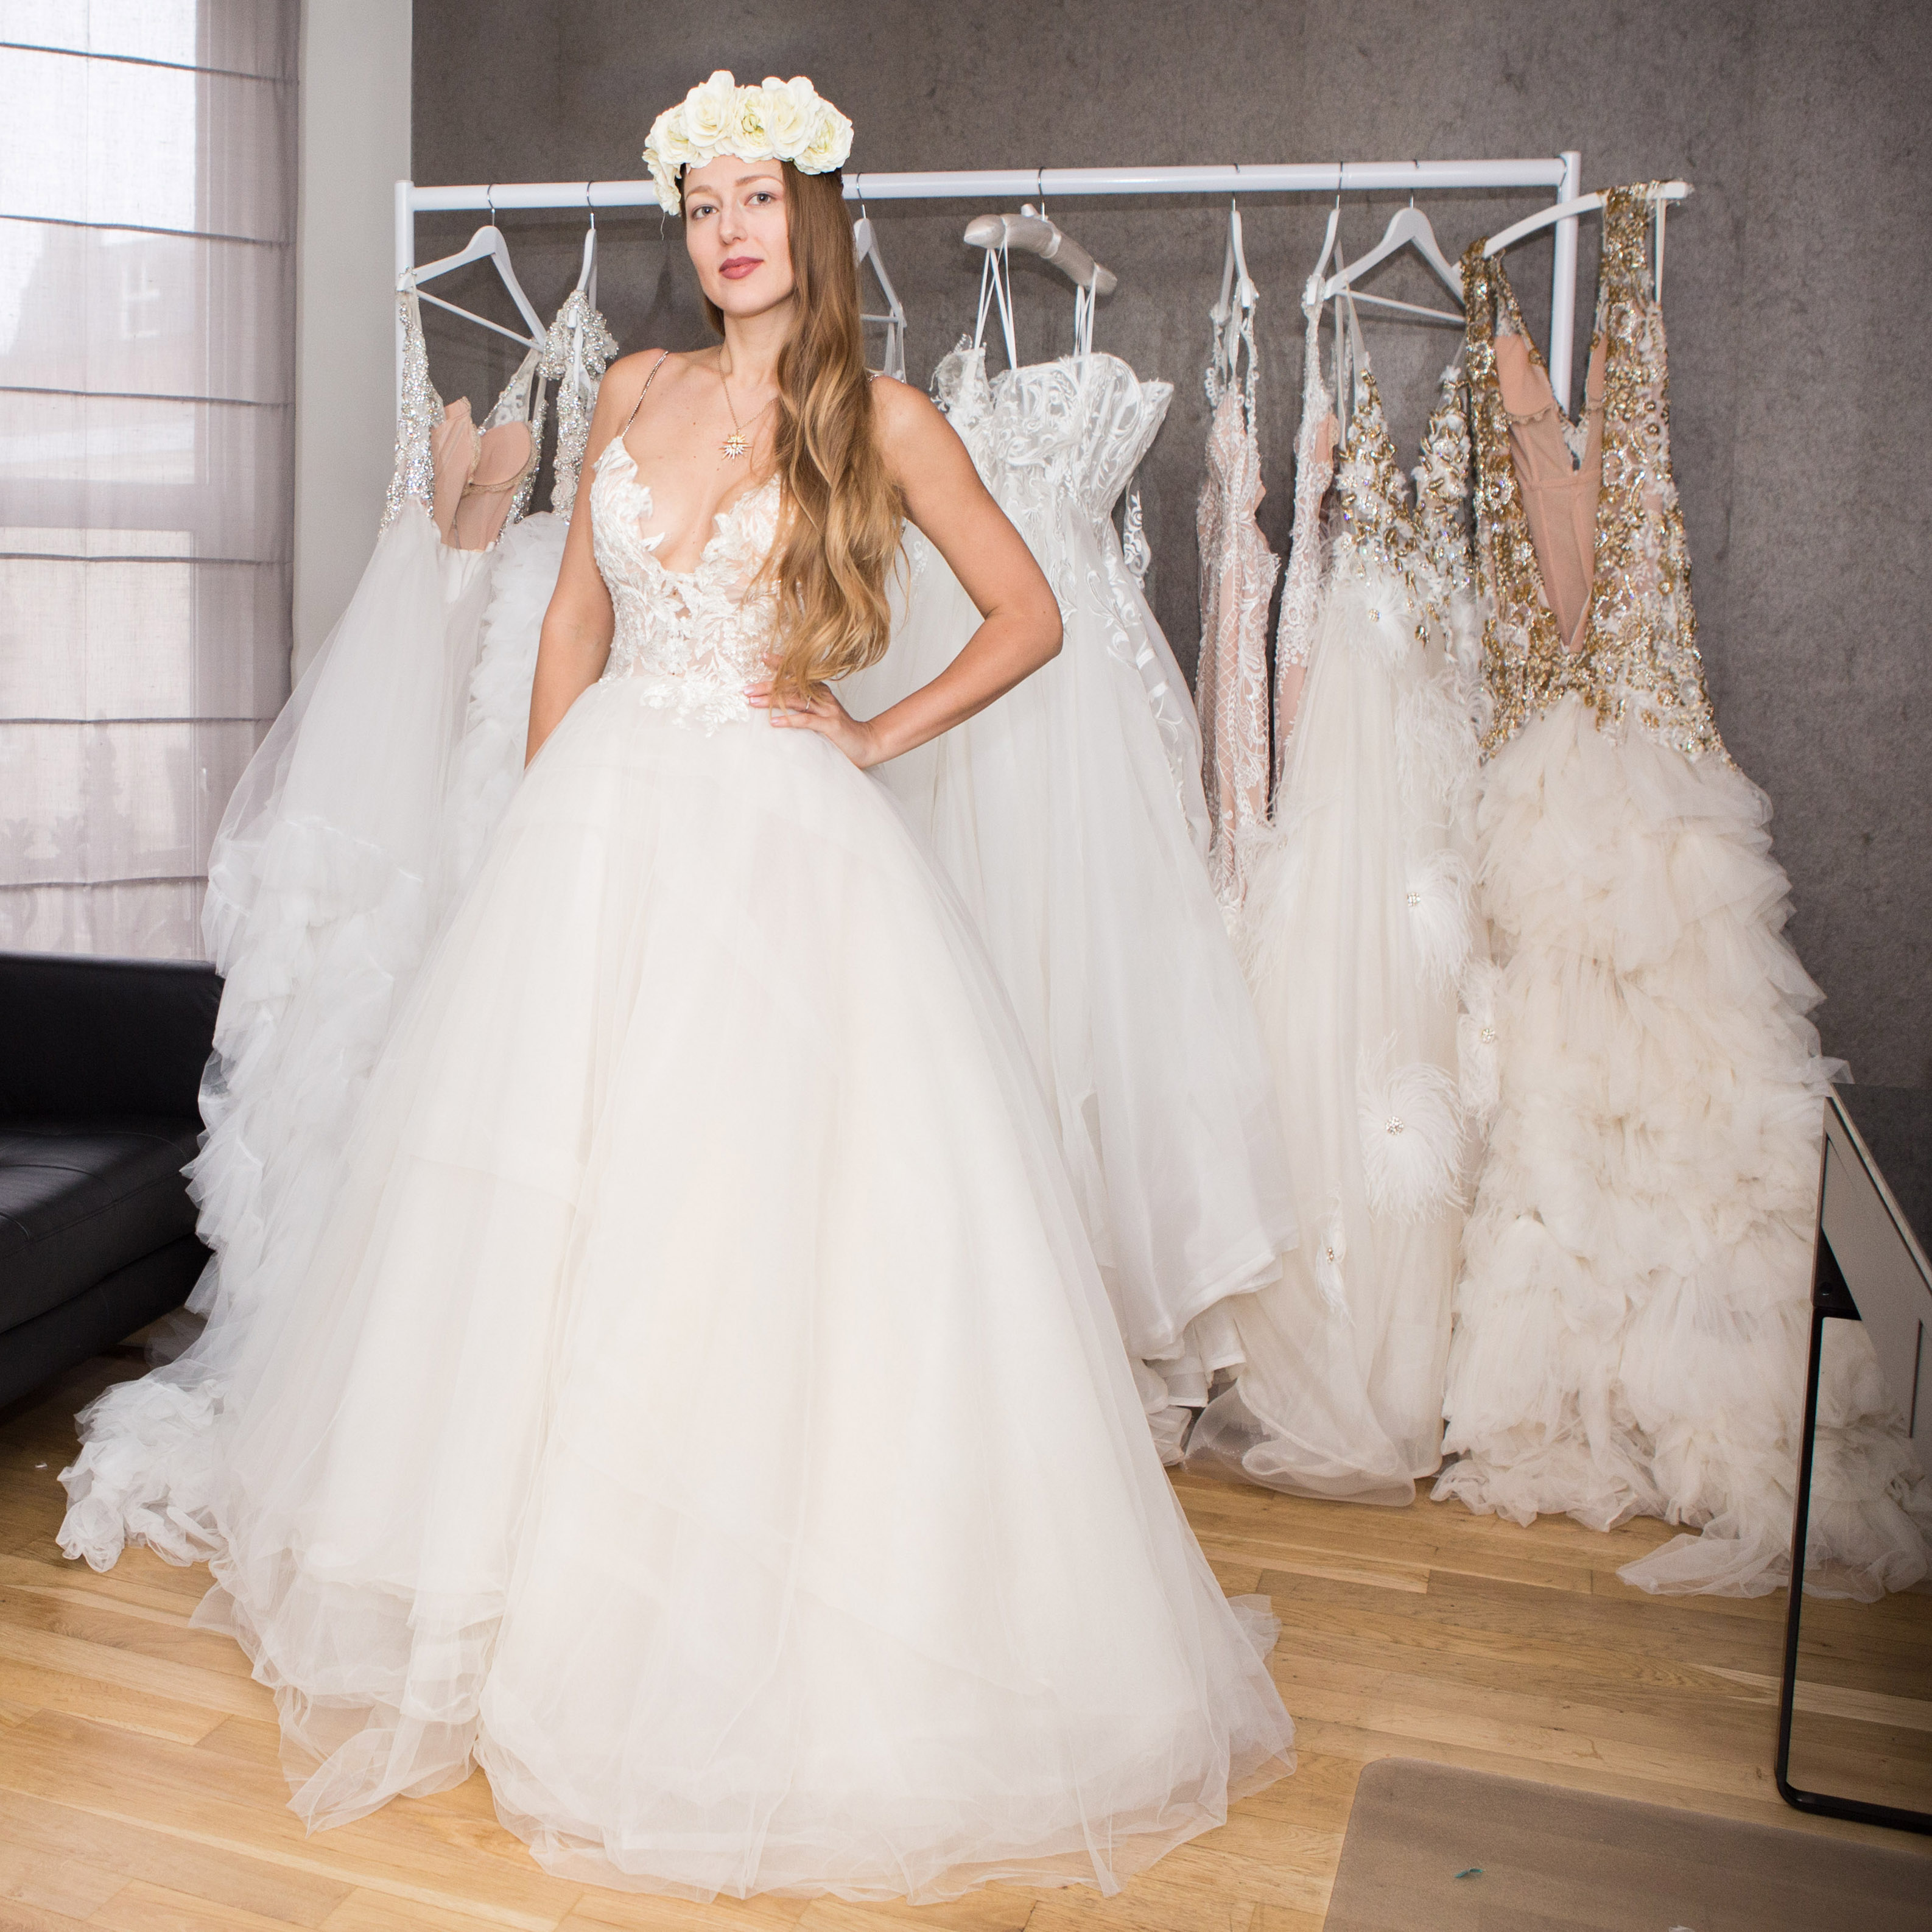 How To Find A Wedding Dress Last Minute With Ruth Milliam Bridal